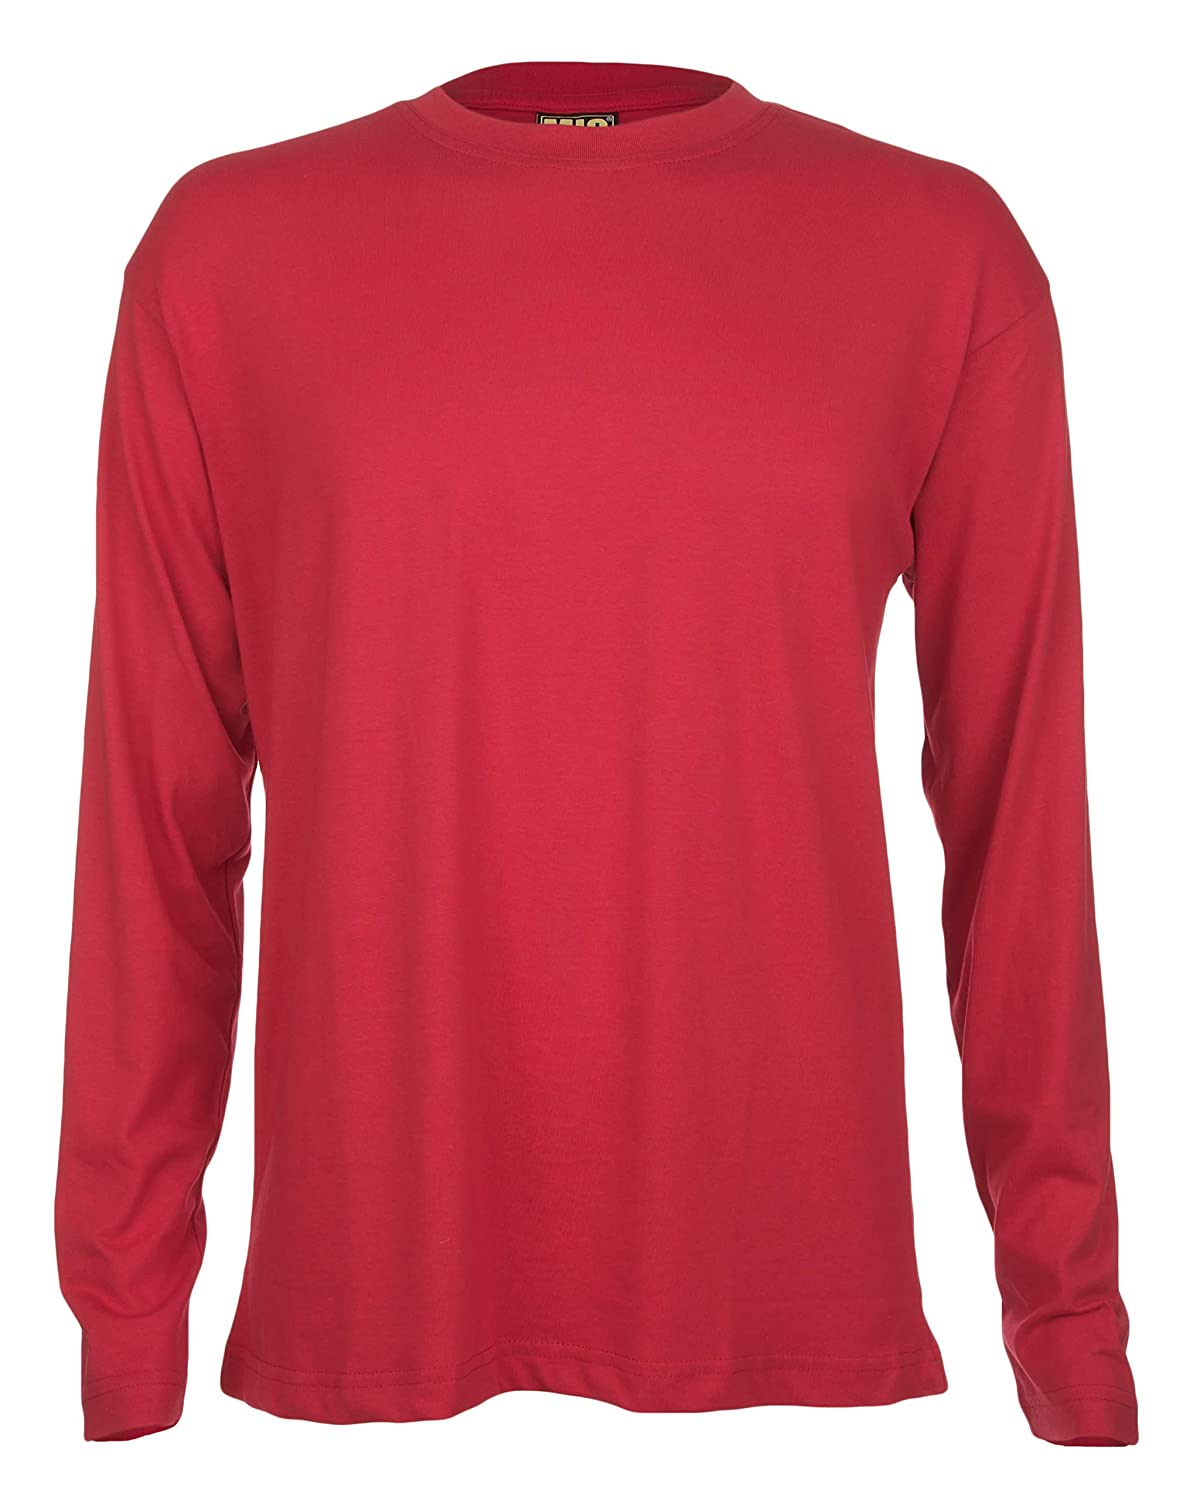 Mens Long Sleeve Premium T Shirts By MIG Sizes S to 4XL - WORK CASUAL SPORTS